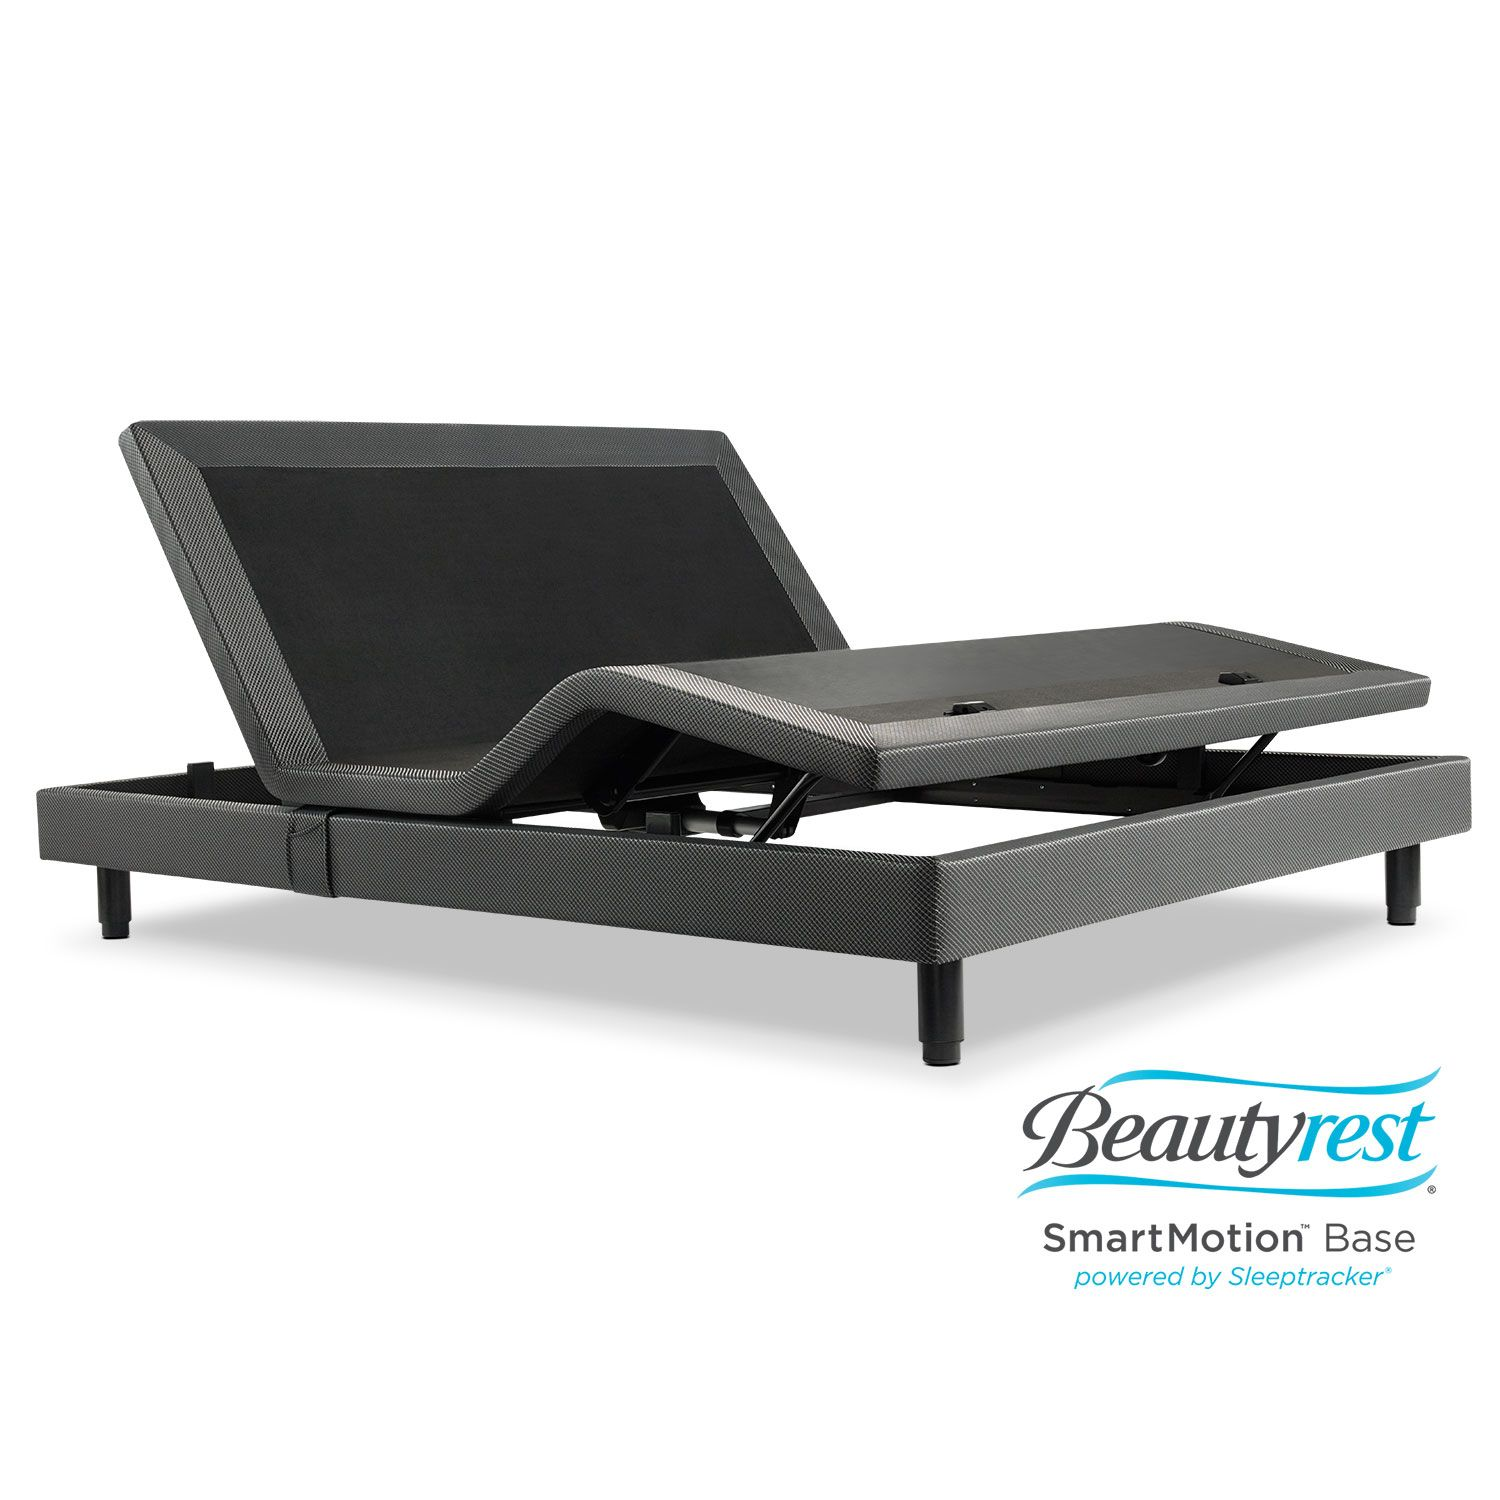 Beautyrest Smartmotion 2 0 King Split Adjustable Base Products